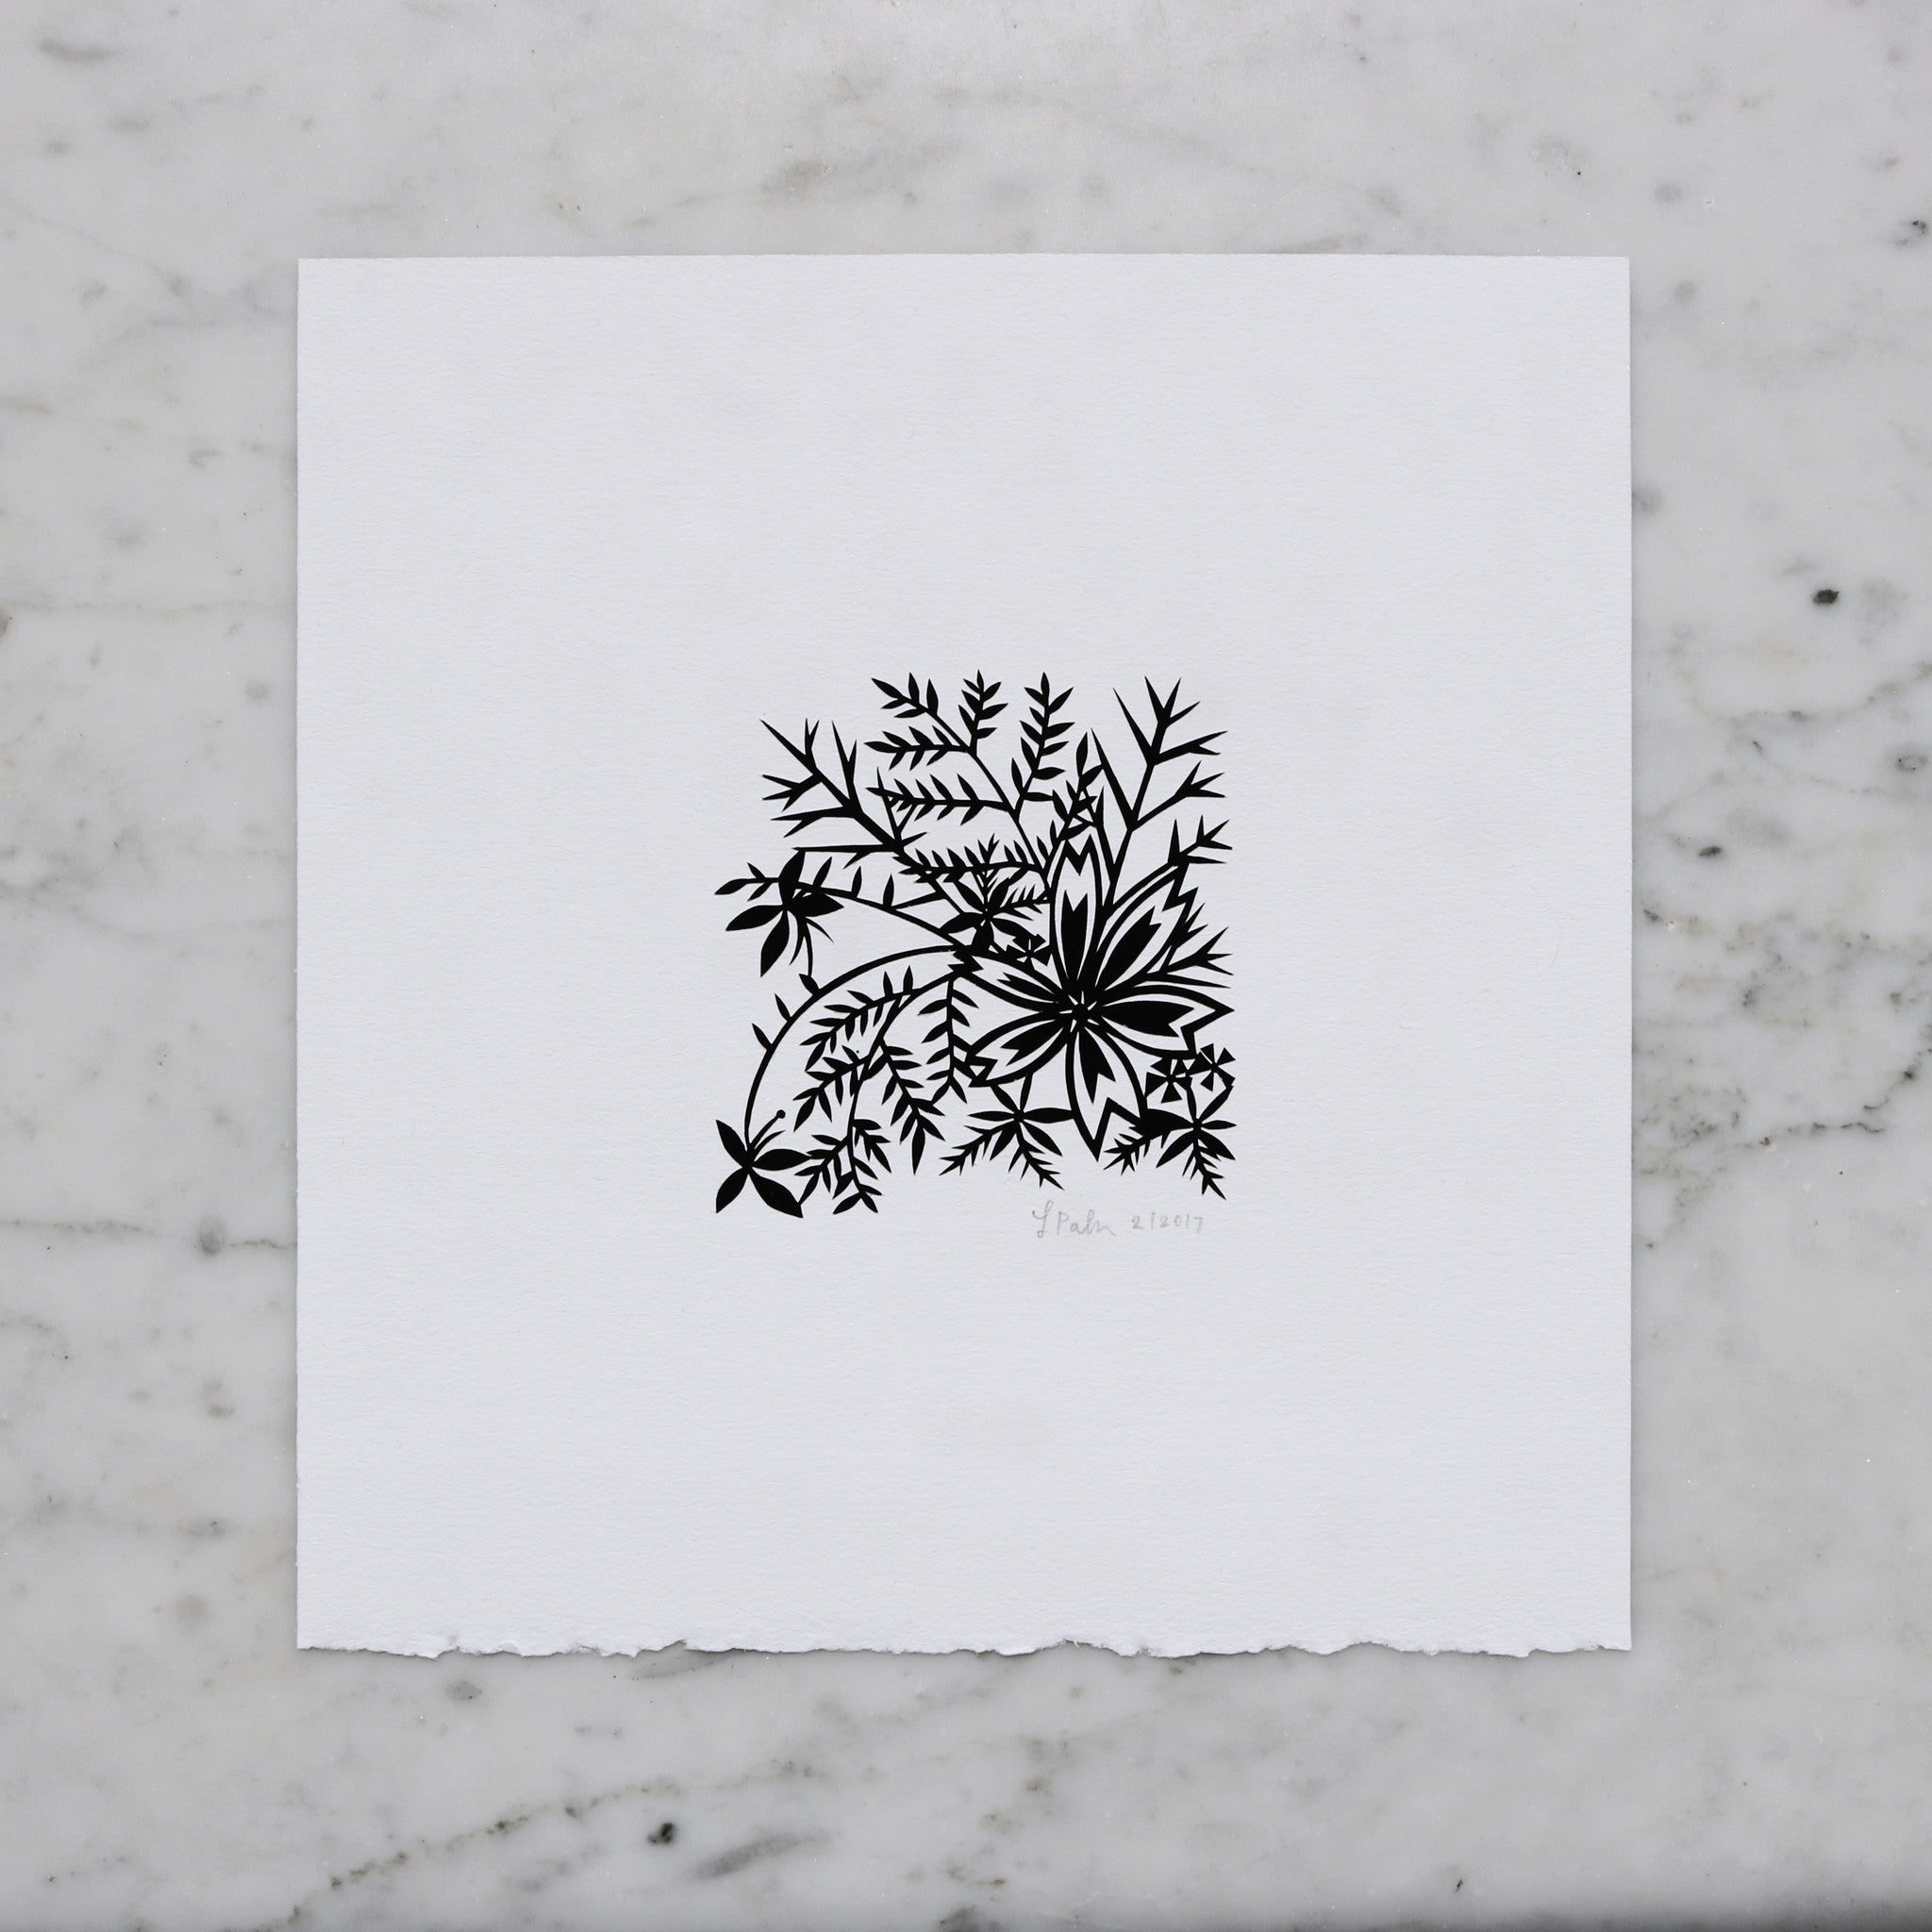 Black and White Floral | Original Papercut Artwork